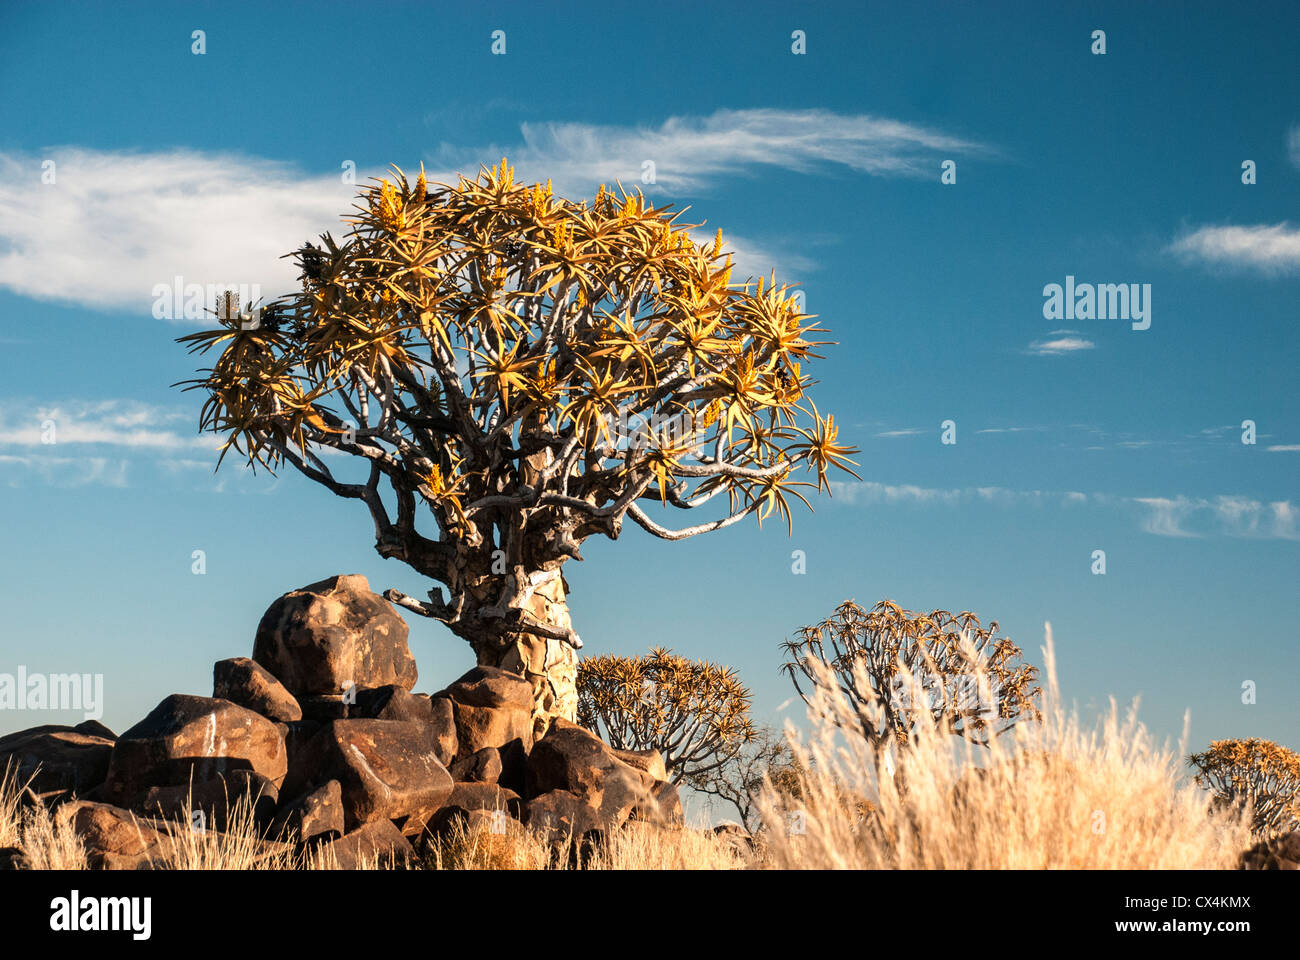 Arbres carquois Kokerboom, Aloe dichotoma, Quiver Tree, forêt, Ferme Gariganus, Keetmannshoop, Namibie, Afrique Photo Stock